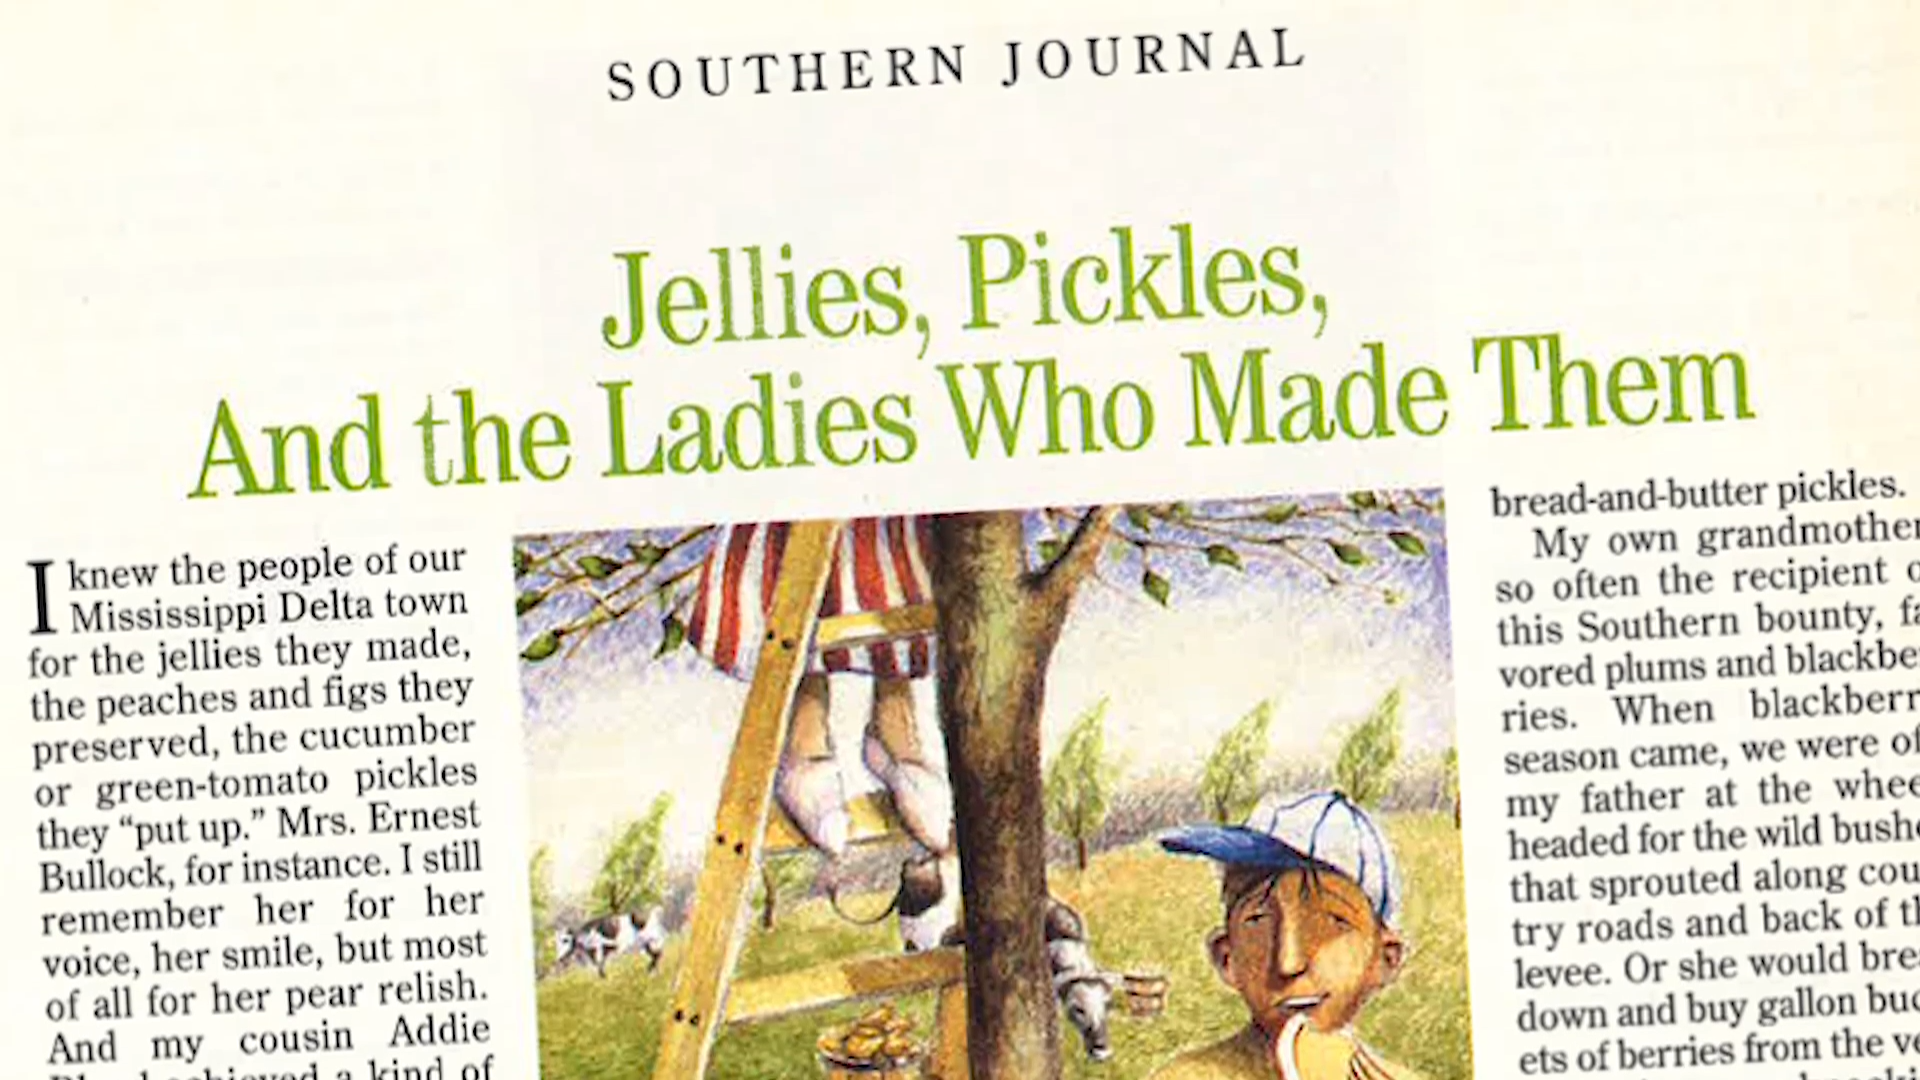 Jellies, Pickles, And The Ladies Who Made Them